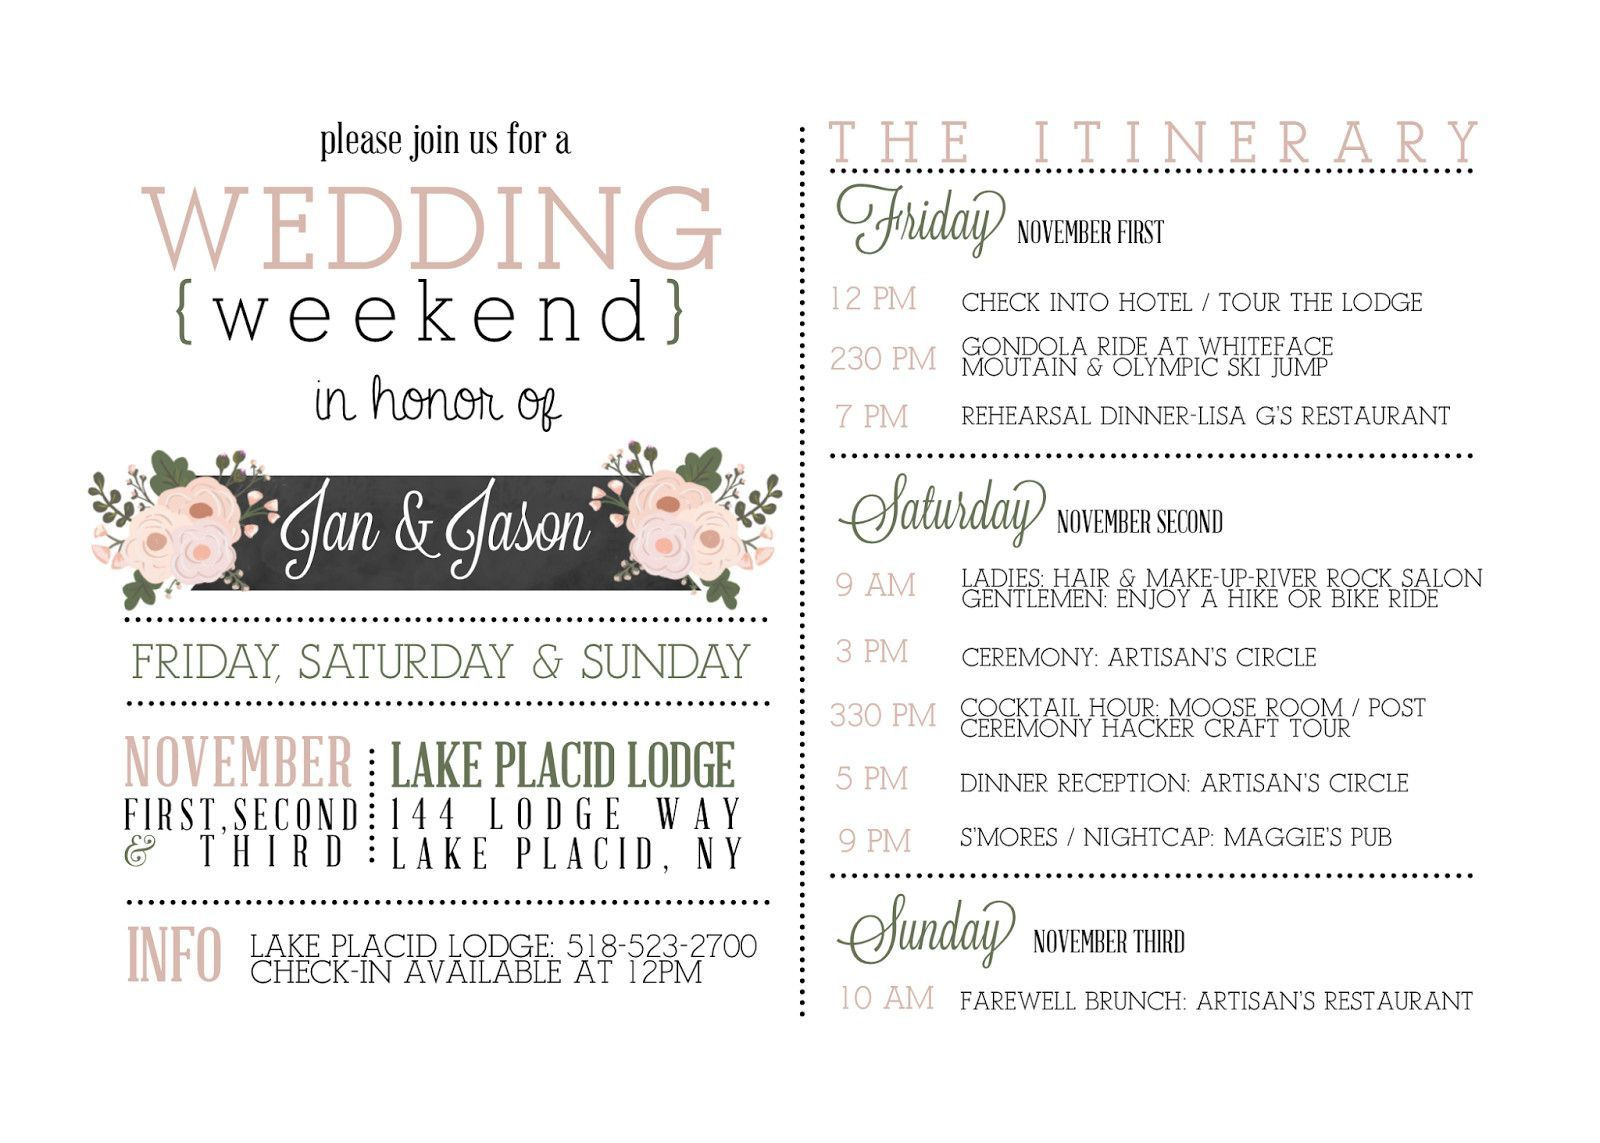 000 Formidable Wedding Timeline For Guest Template Free High Resolution  DownloadFull